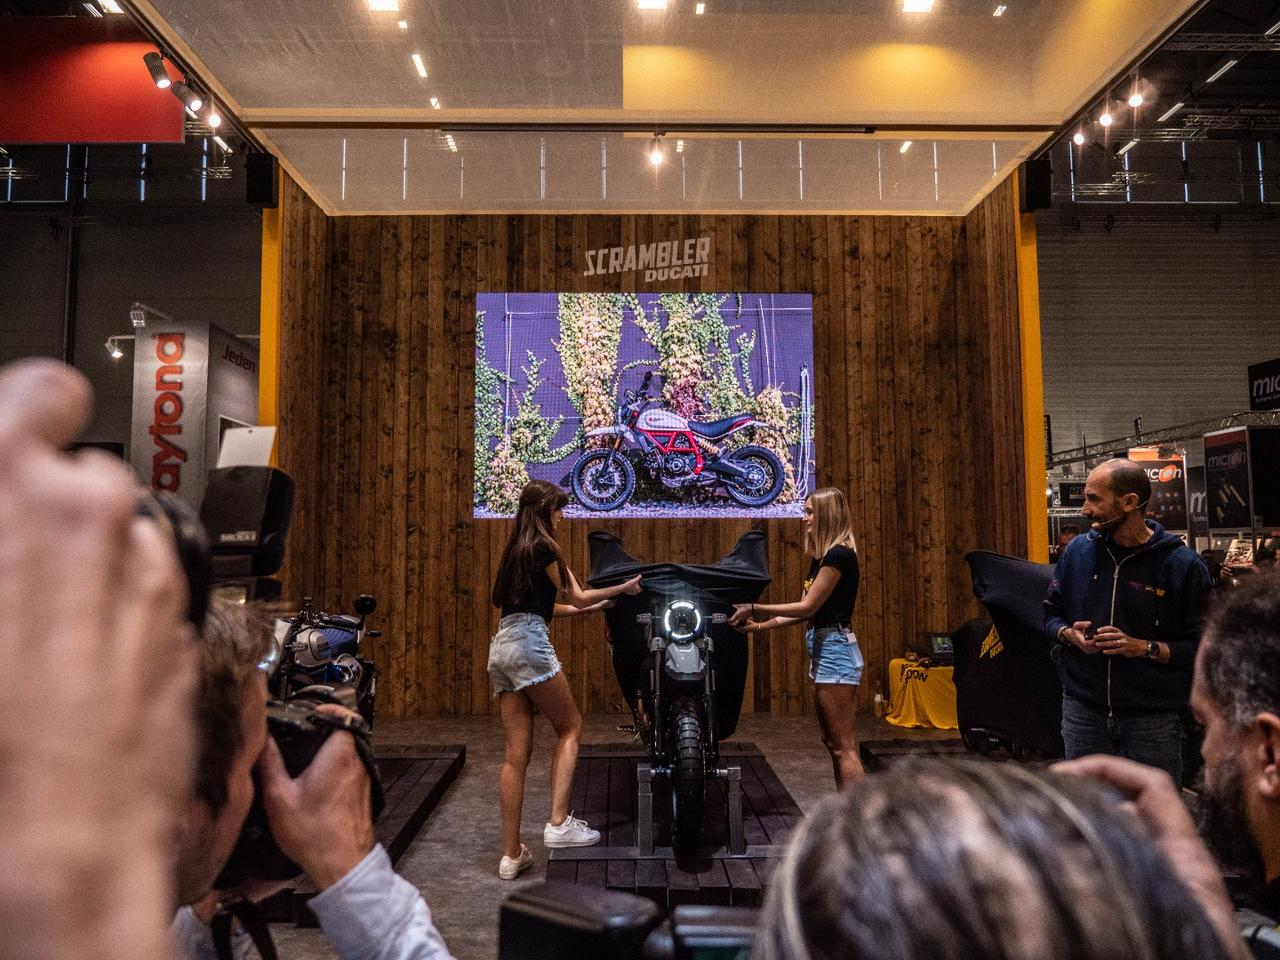 Ducati takes the wraps off three new Scramblers at Intermot 2018